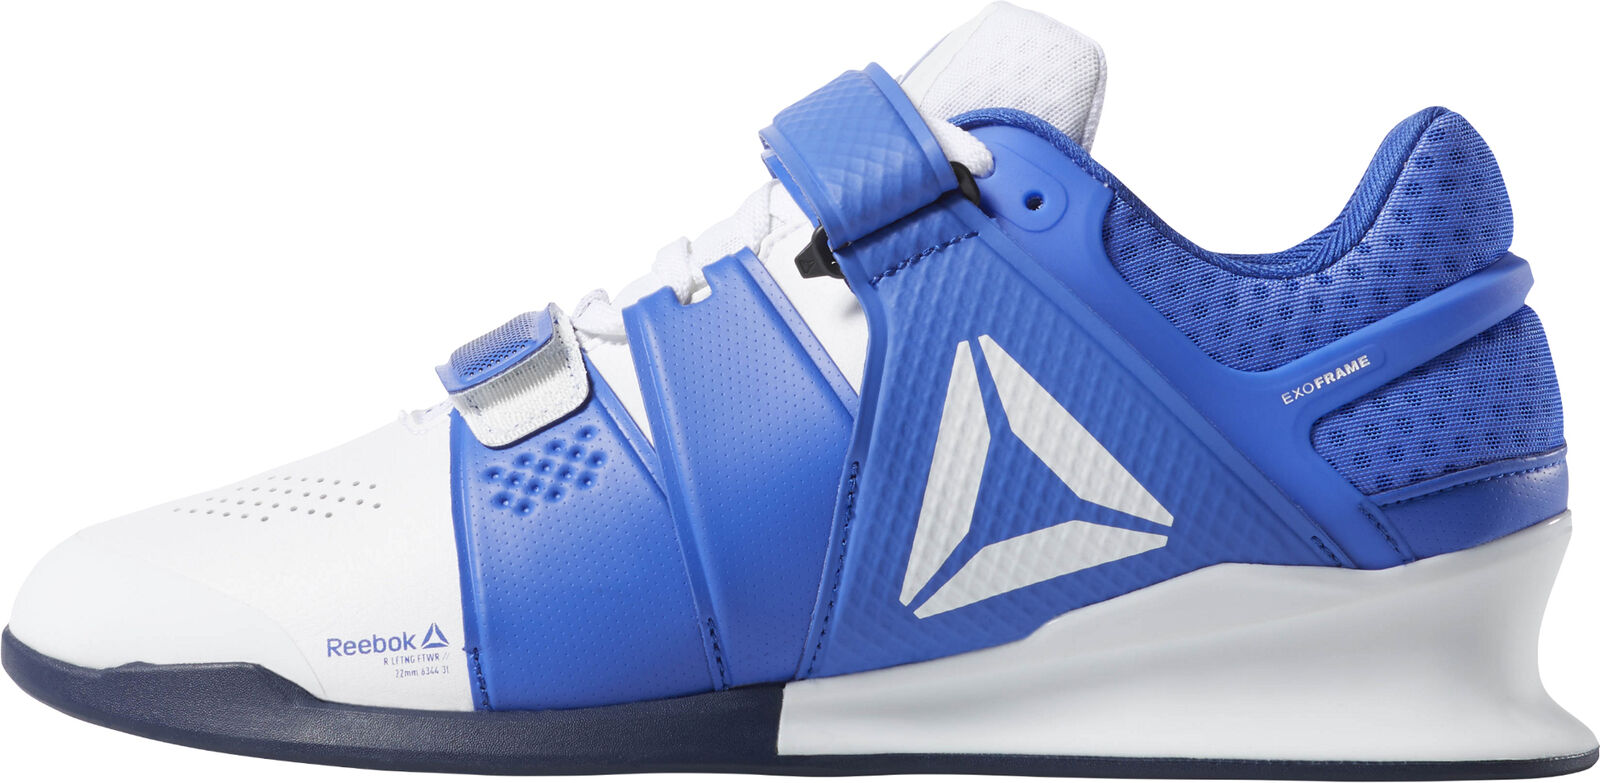 Reebok legacy  lifter mens weightlifting shoes white bluee gym bodybuilding boots  simple and generous design